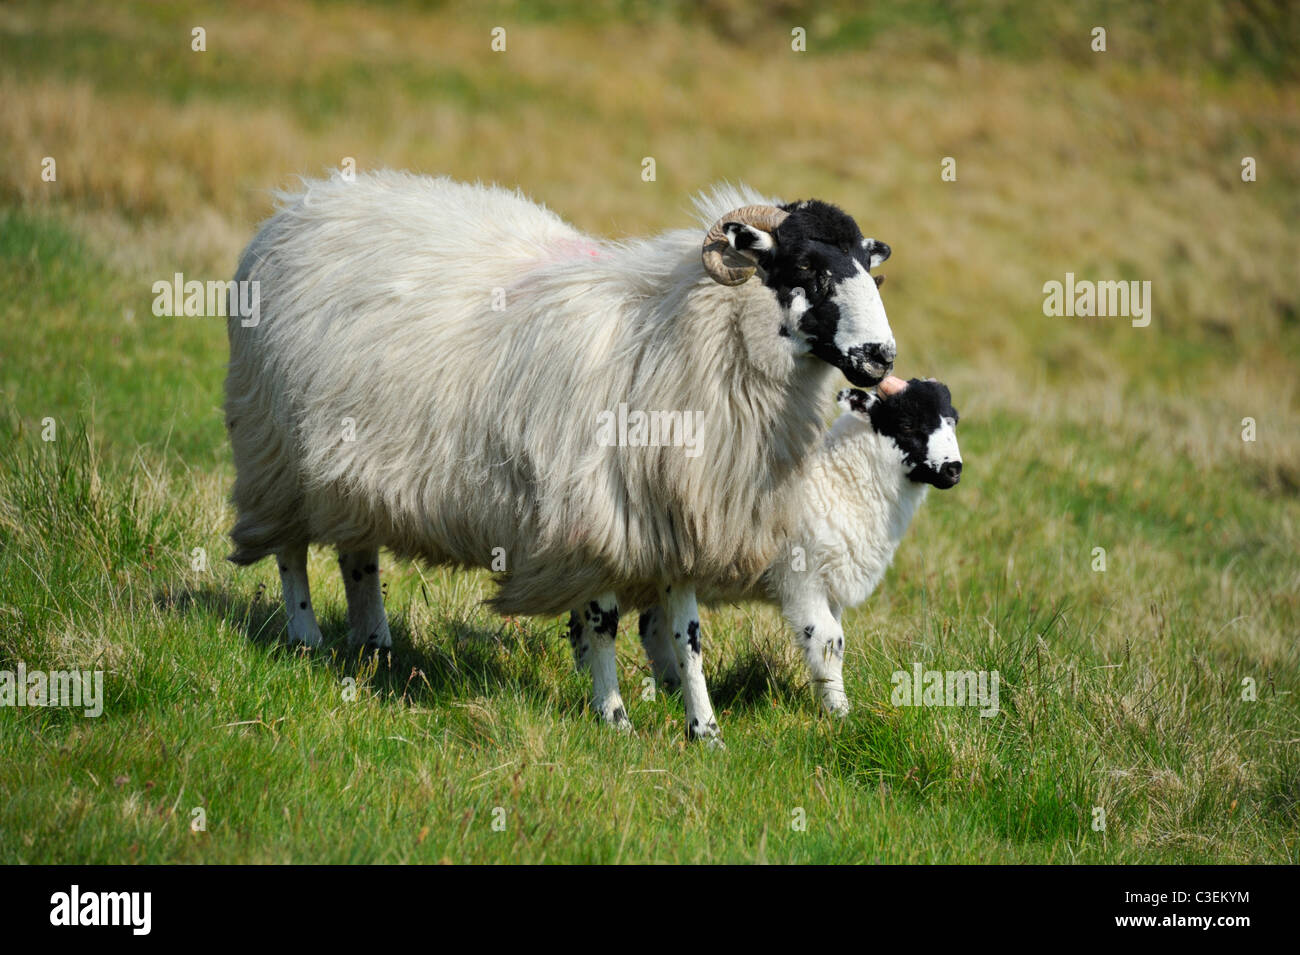 Rough Fell ewe with lamb. Whinash, Borrowdale, Cumbria, England, United Kingdom, Europe. - Stock Image